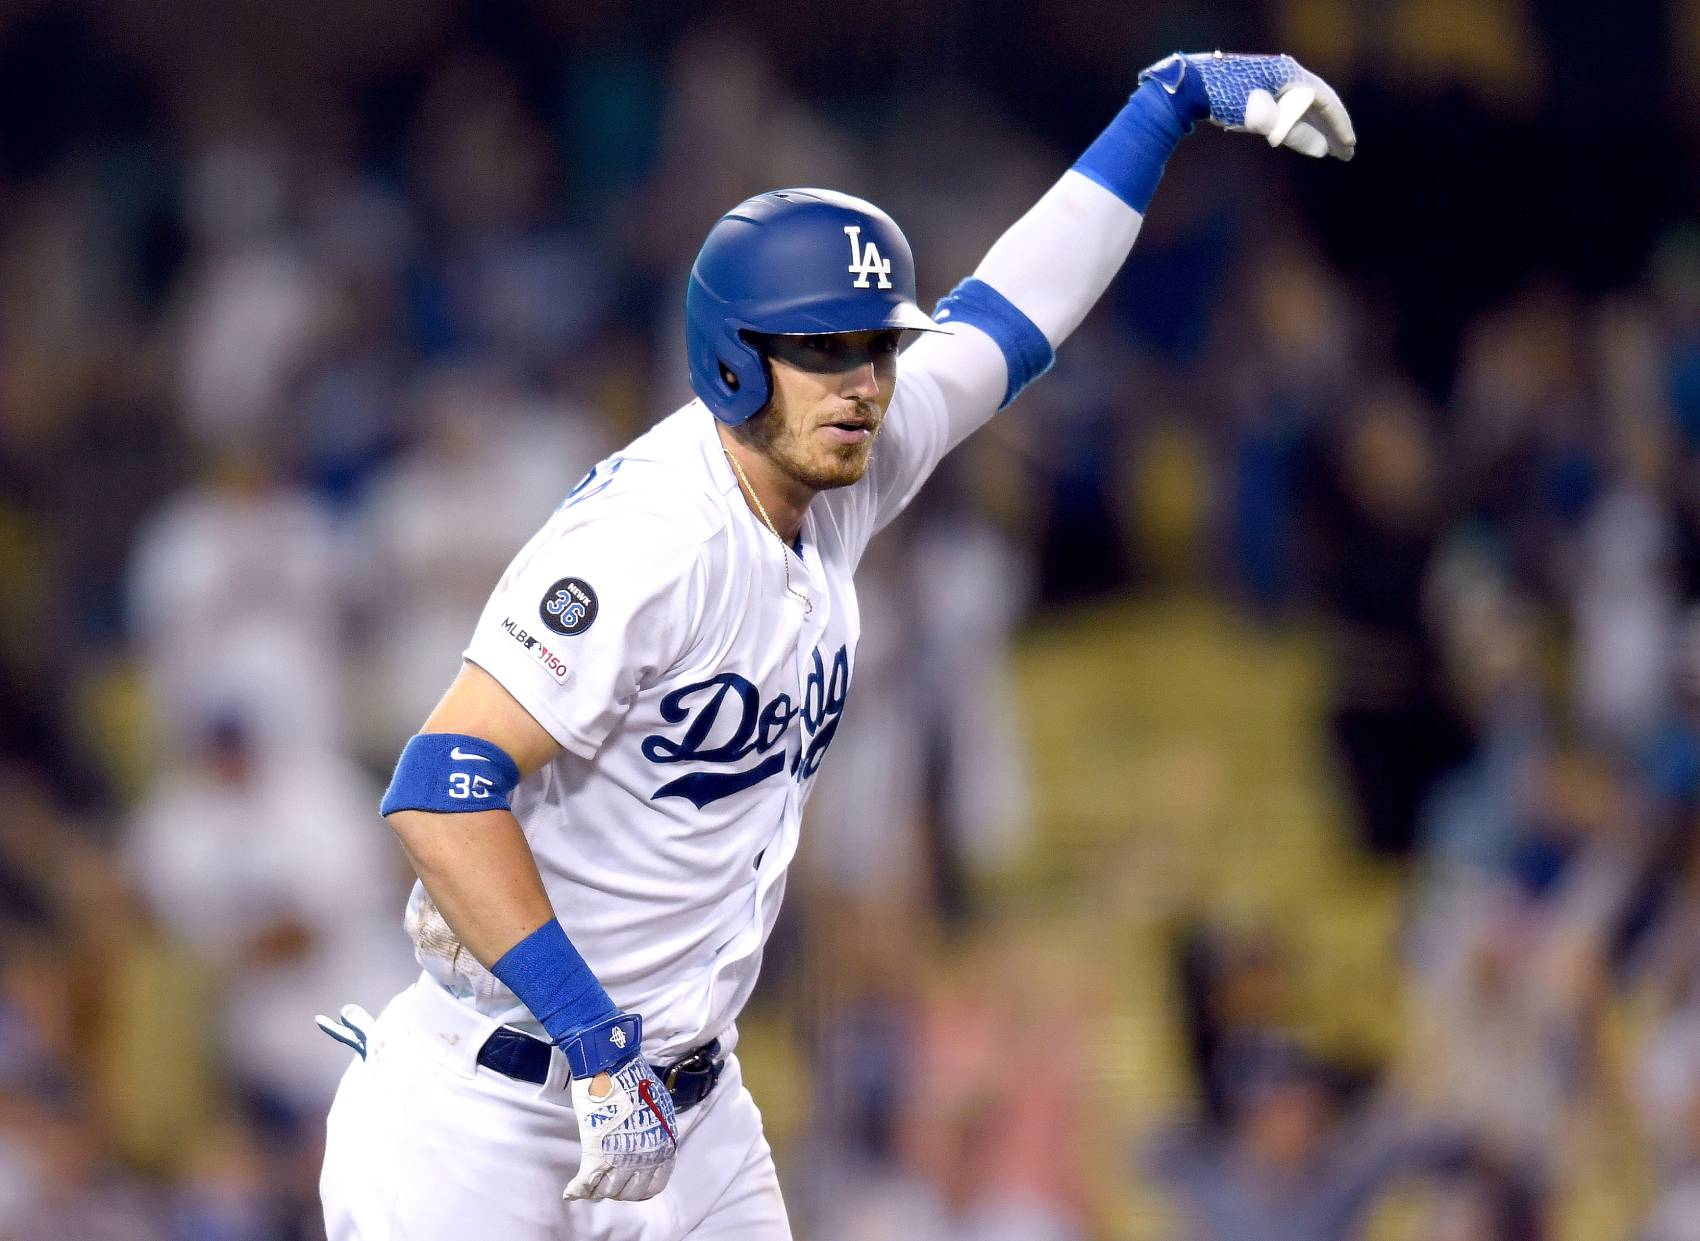 Los Angeles Dodgers outfielder Cody Bellinger could be the sports' first 60-game home run champion. The 2020 MLB season will be condensed to 60 or fewer games because of the coronavirus pandemic.